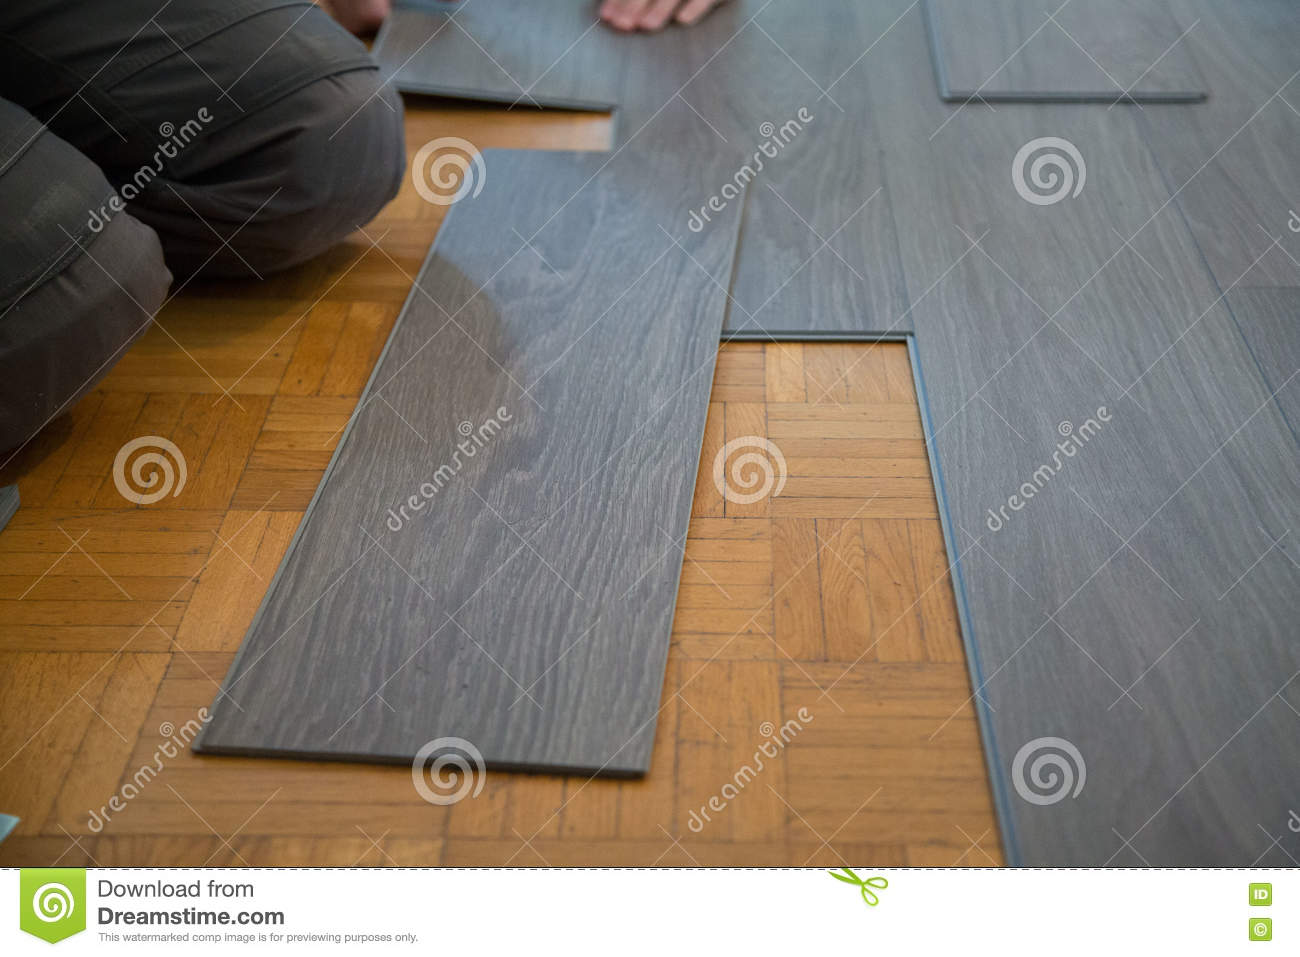 Lay Vinyl Floor On Parquet Floor Stock Image Image Of Surface - What do you need to lay vinyl flooring